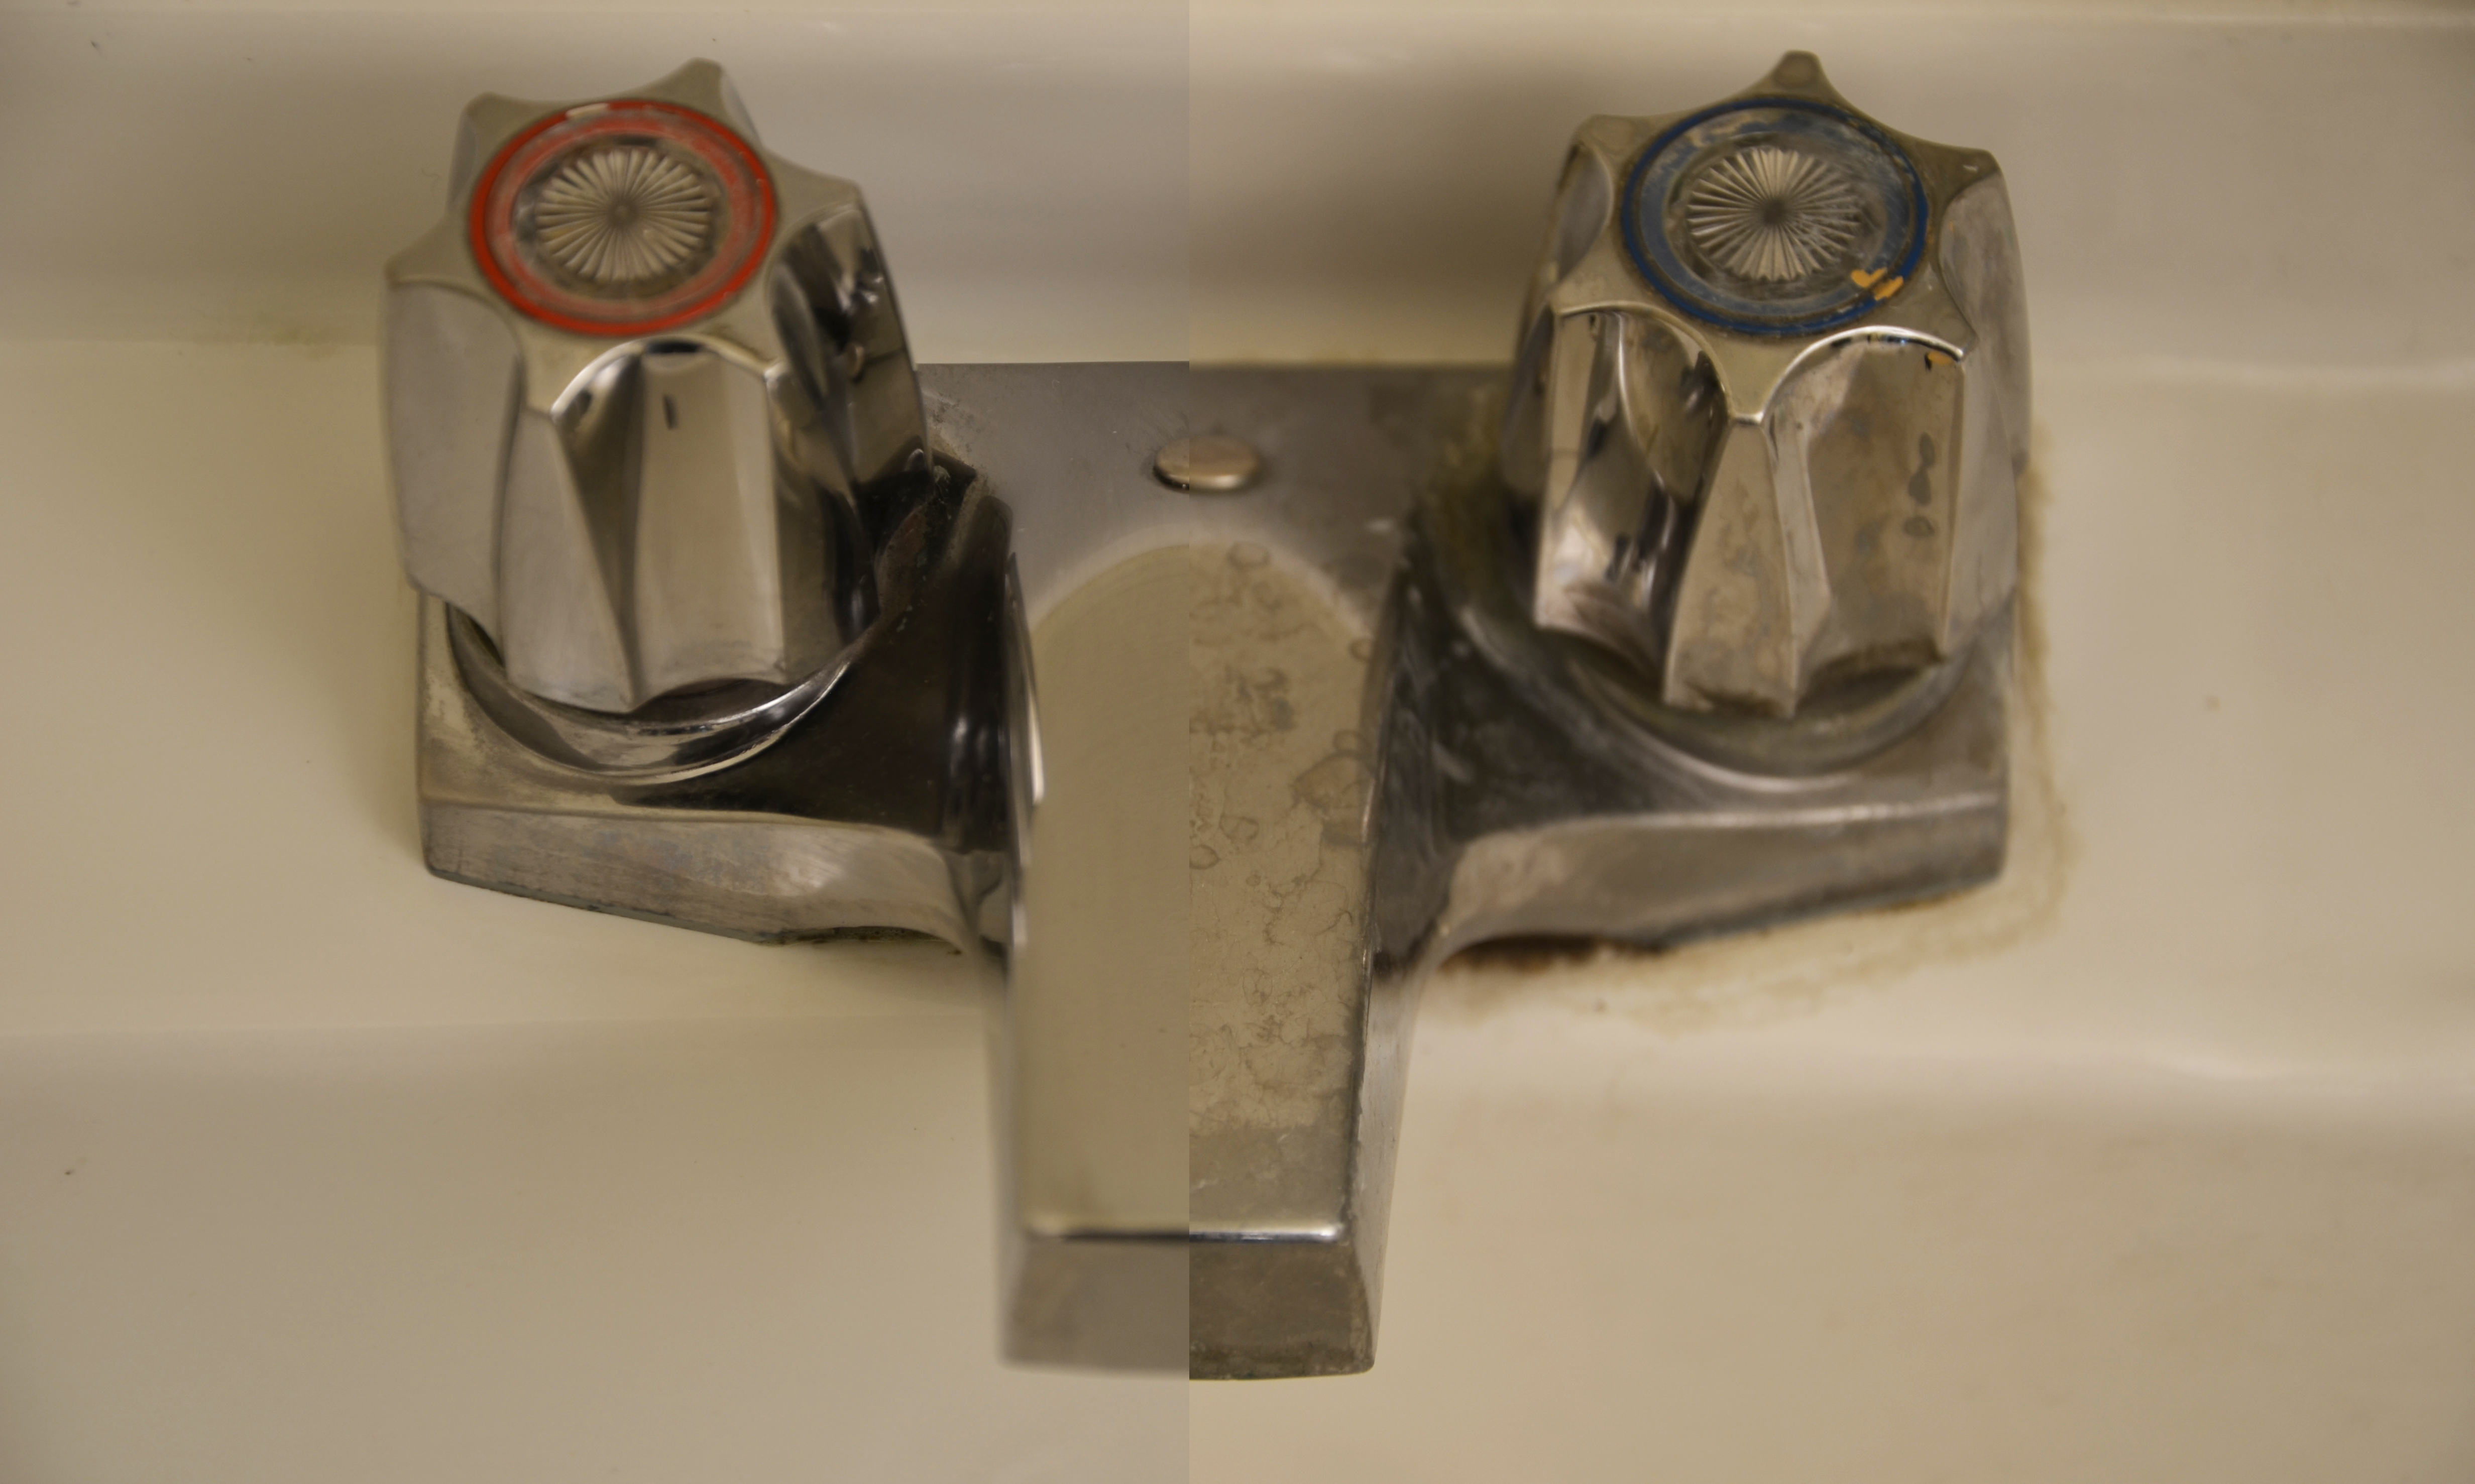 Calcium Buildup on Sinks and Taps: The janitorial supplies you need ...